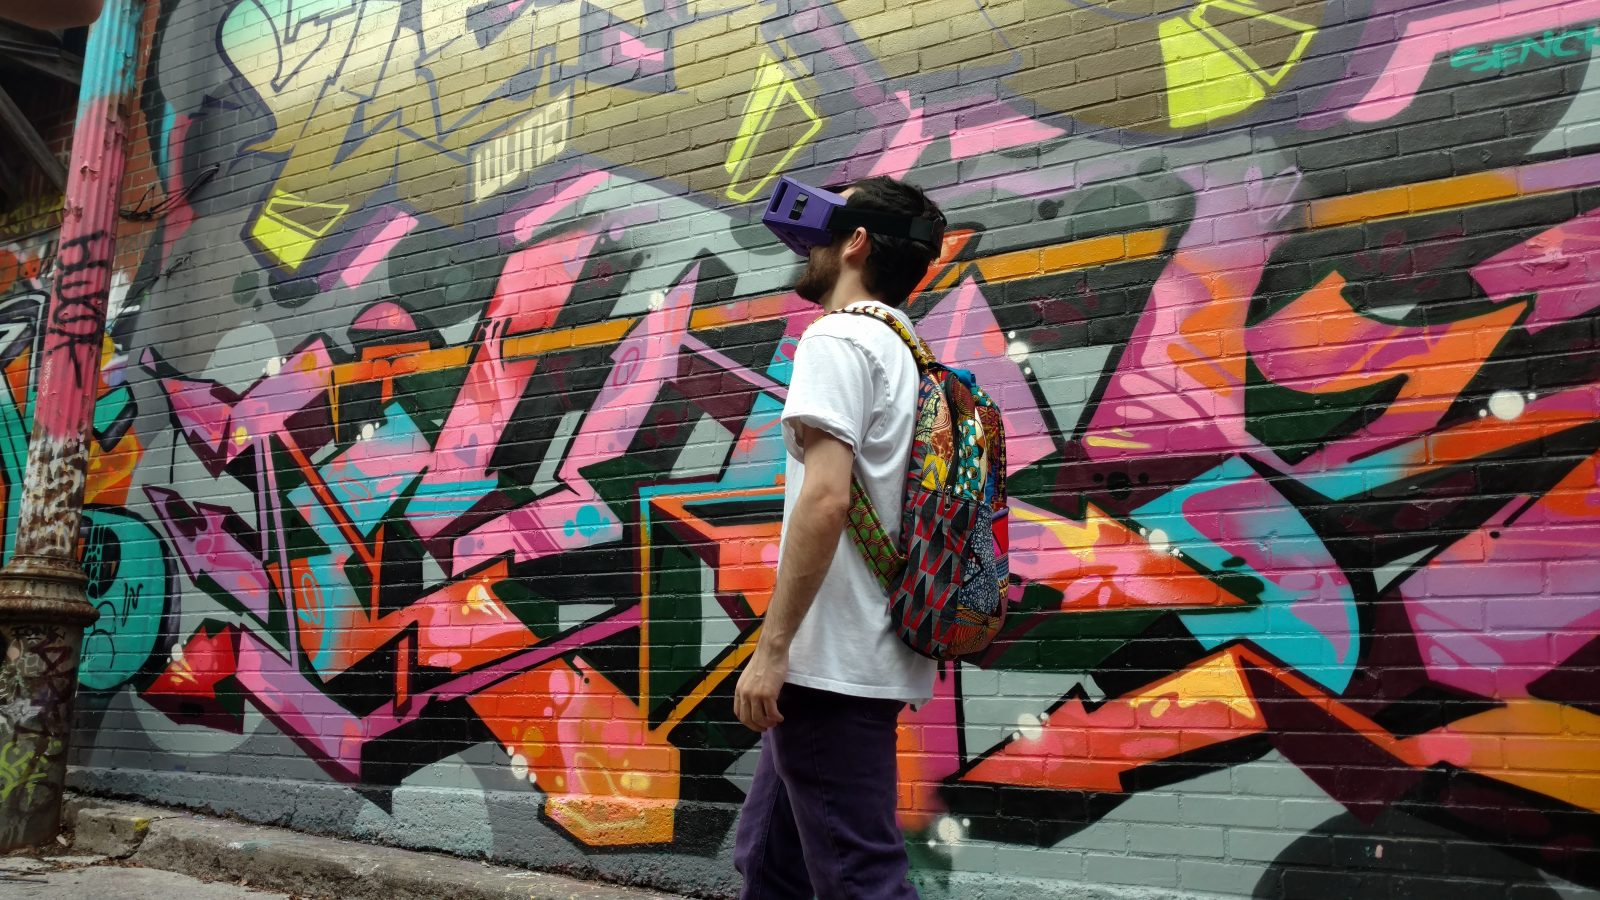 Student wearing VR headset in front of graffiti art on a brick wall